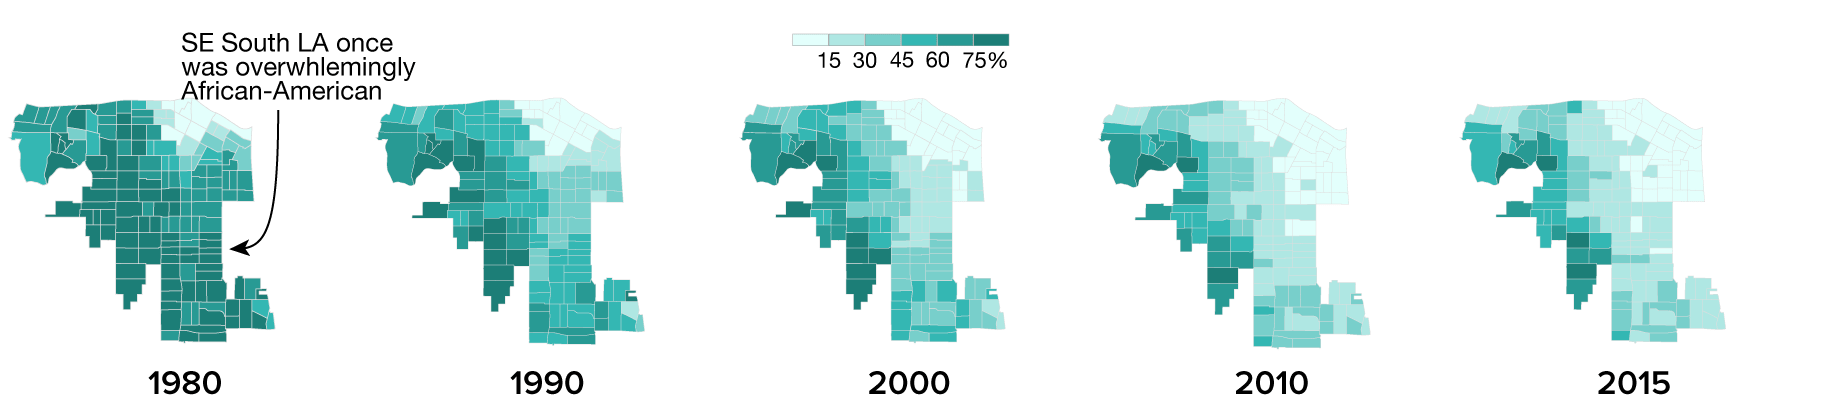 African-American Population in South LA 1980 - 2015